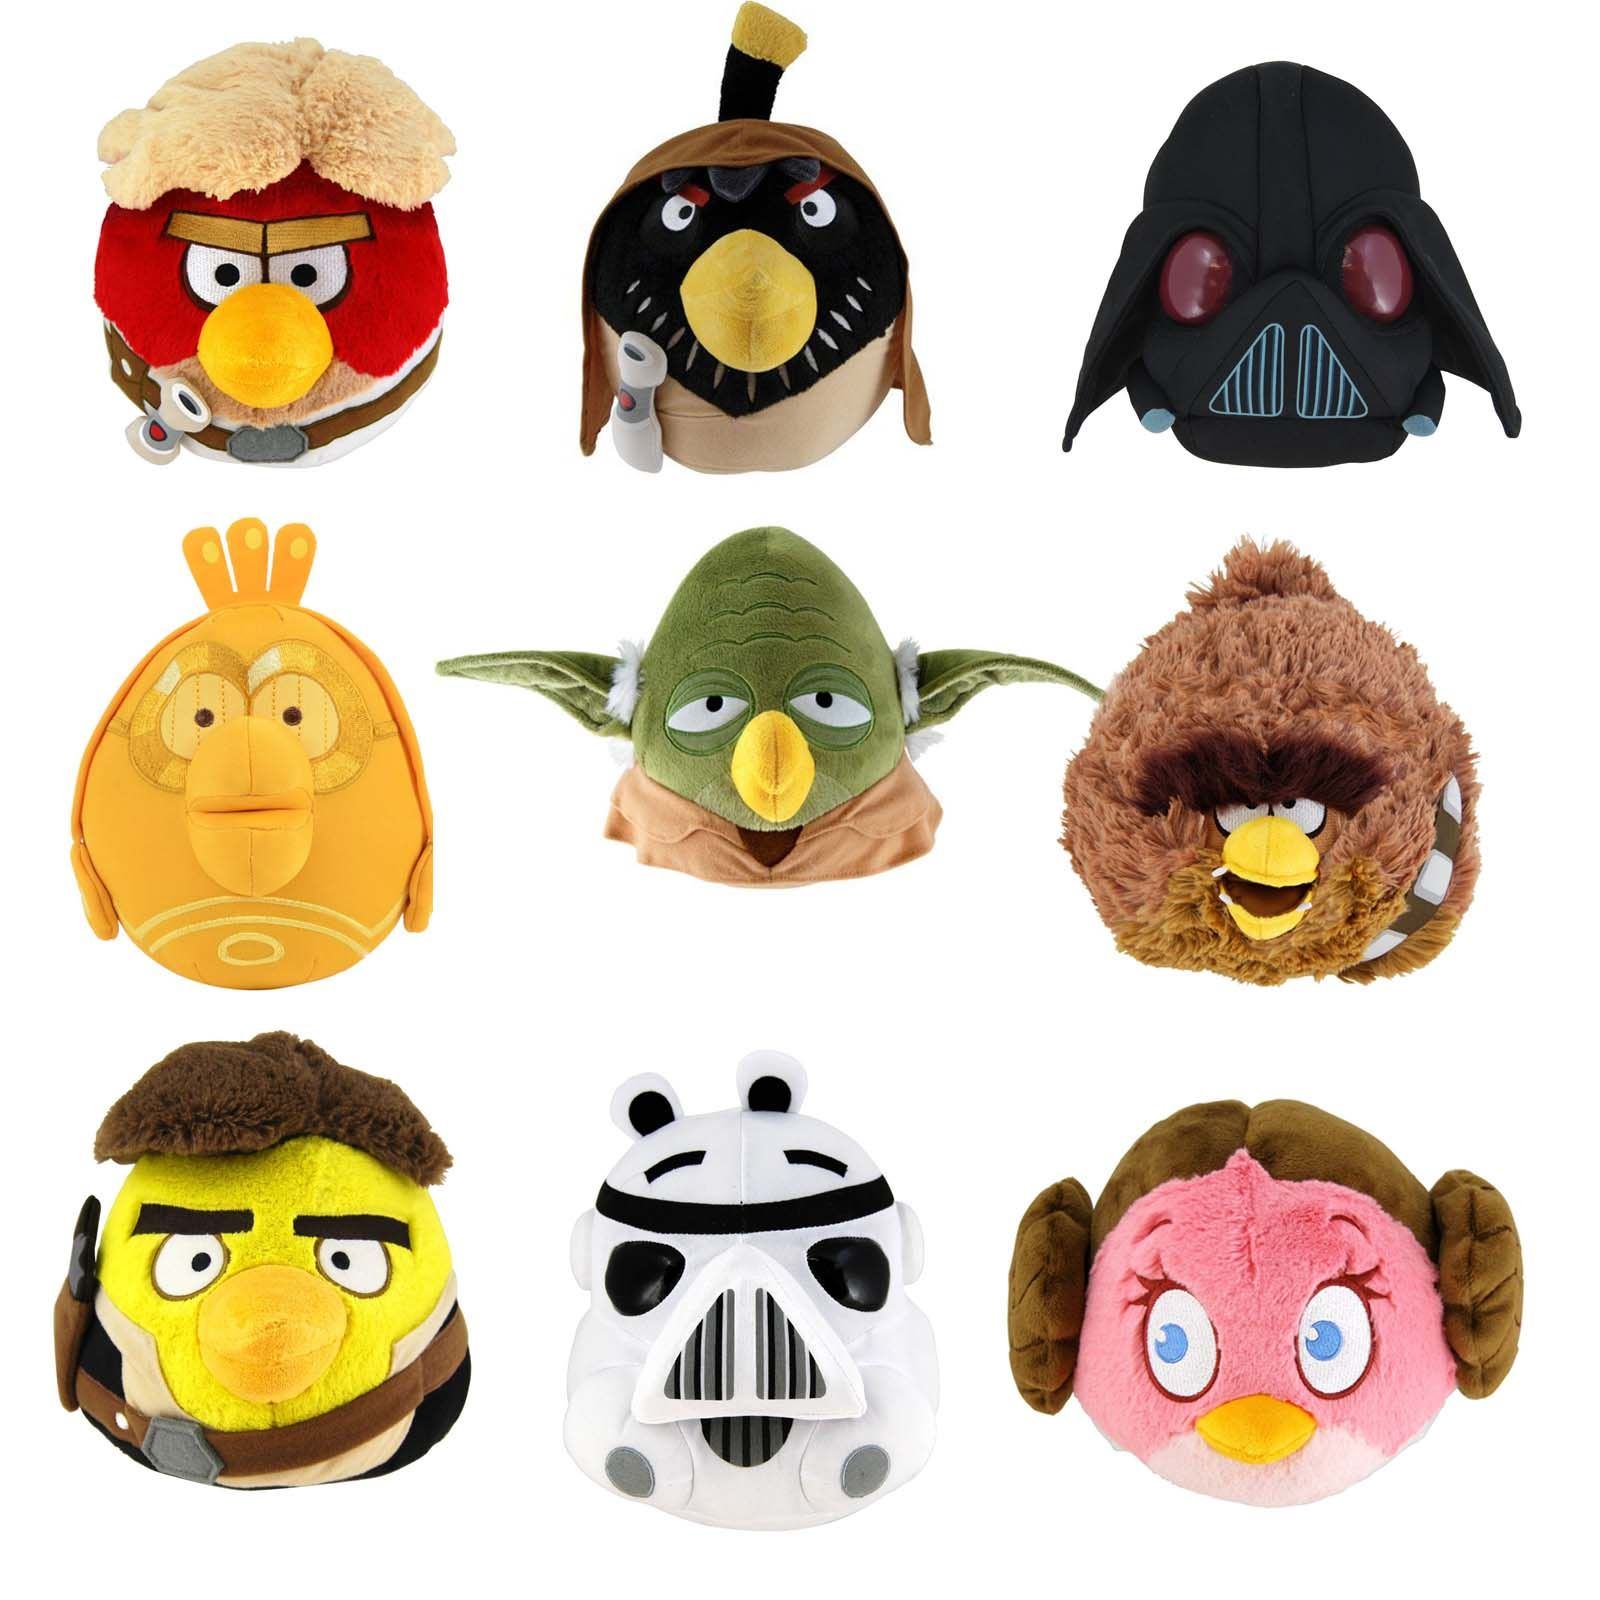 "ANGRY BIRDS STAR WARS 8"" PLUSH SOFT TOY COLLECTIBLE ..."